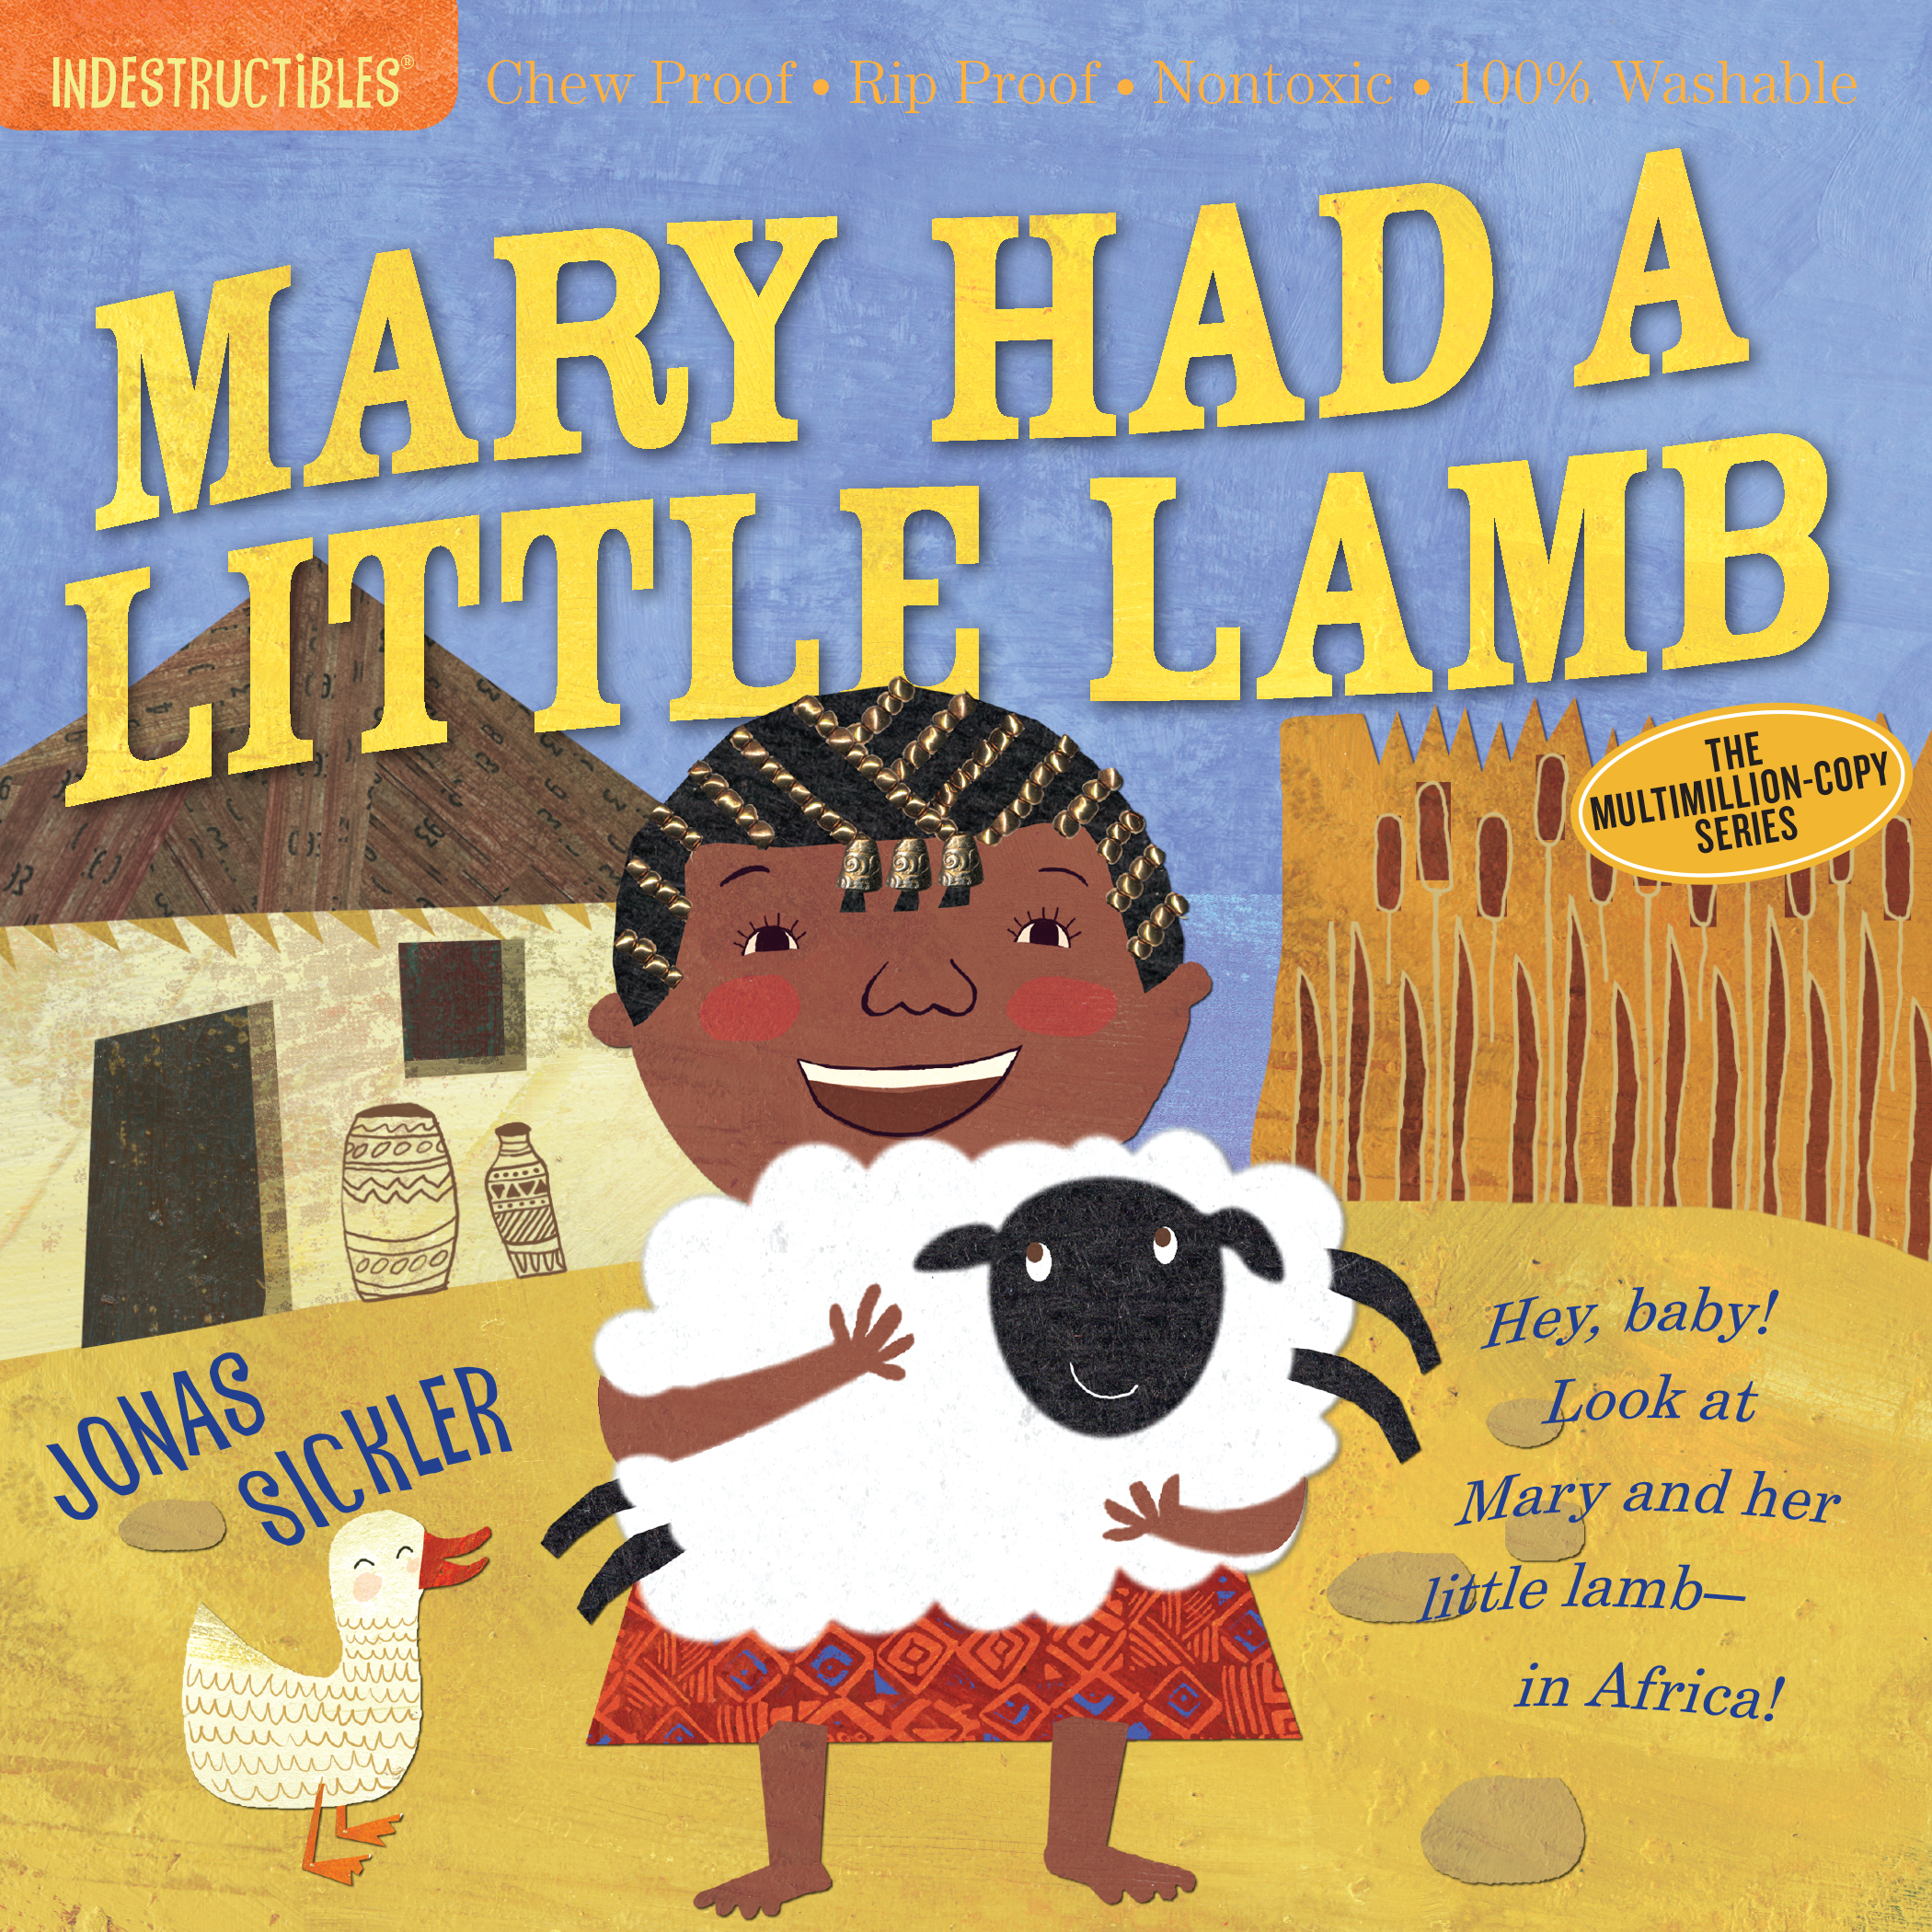 Image result for indestructibles mary had a little lamb